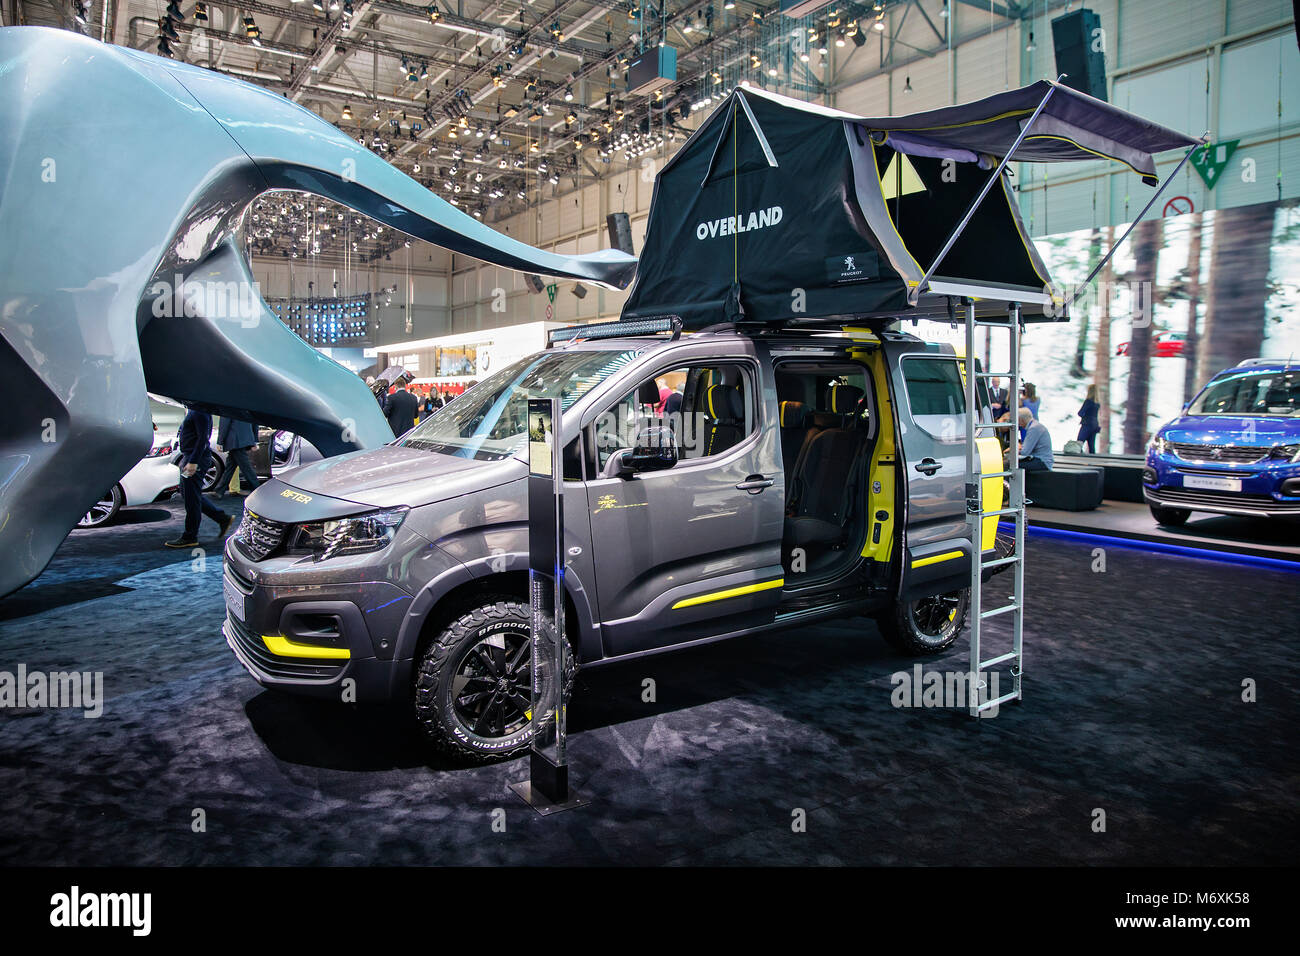 peugeot rifter 4x4 concept stock photo 176377412 alamy. Black Bedroom Furniture Sets. Home Design Ideas